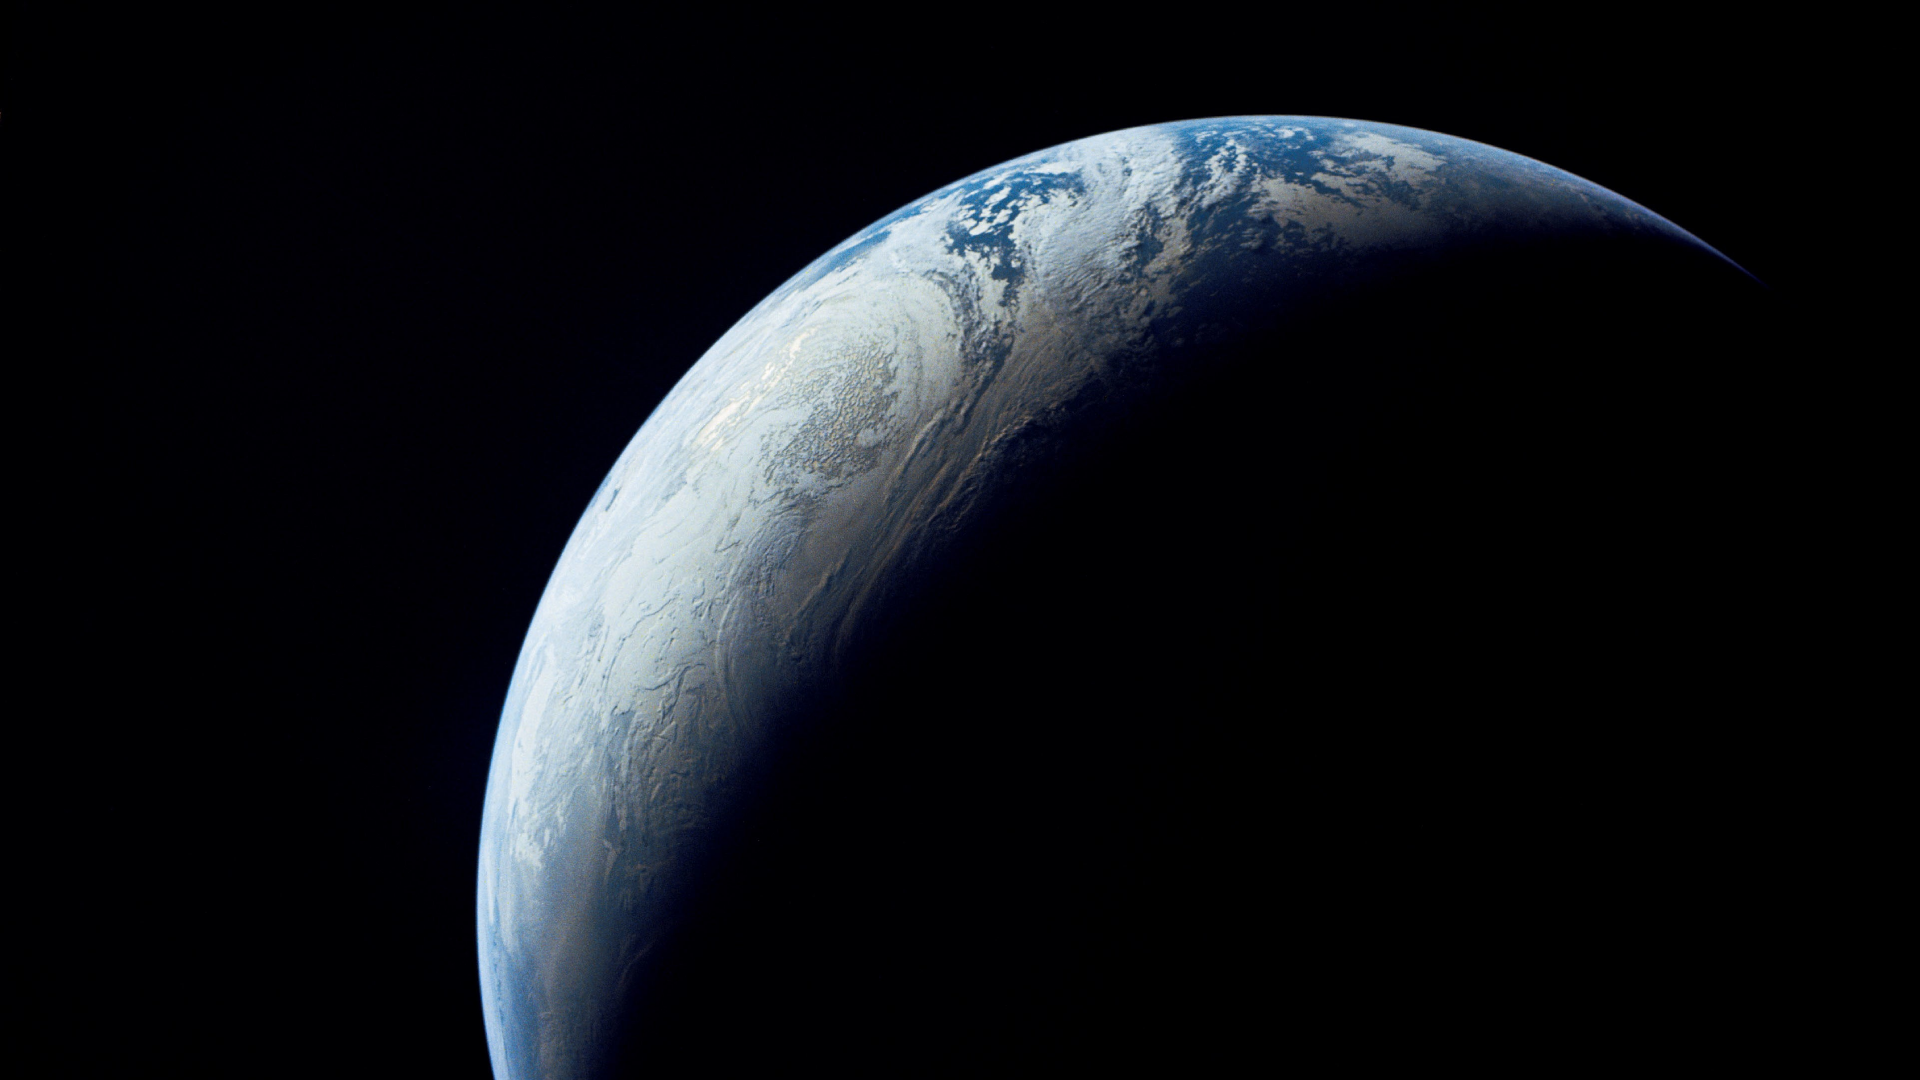 There's a small chance an asteroid will smack into Earth in 2135. NASA is working on a plan.